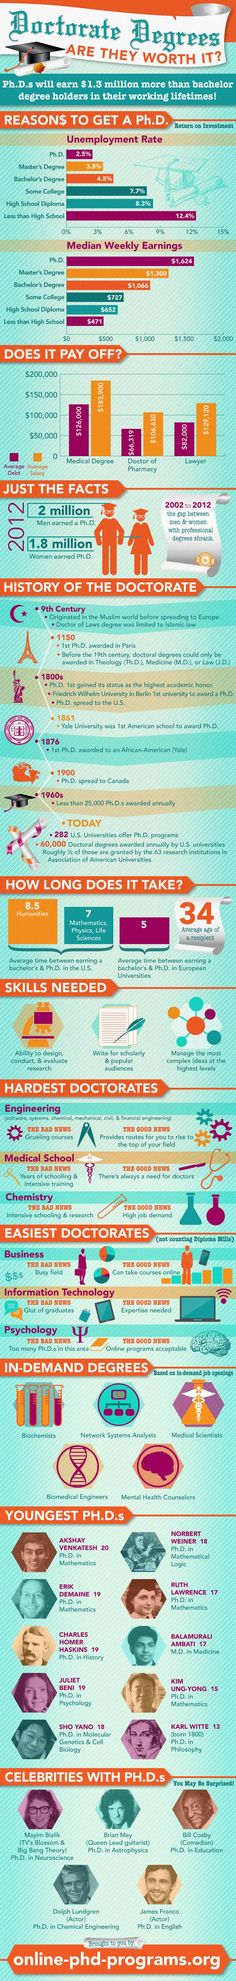 What Are Some Reasons To Get A Ph.D? #infographic